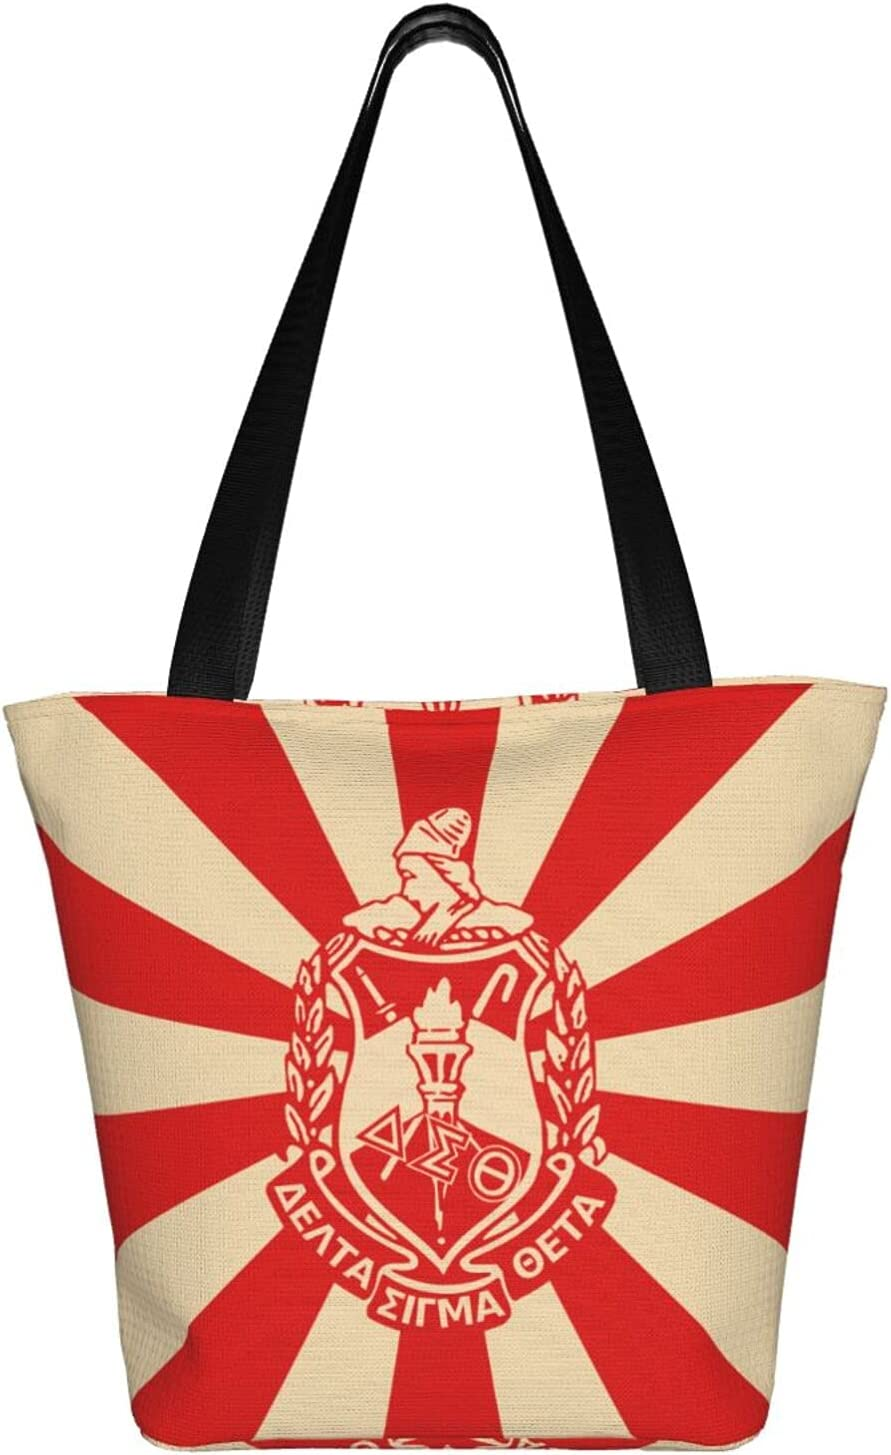 Positive Motion Engaged Delta 1913 DST Sigma Theta Big Capacity Tote Shopping Bag Reusable Shoulder Portable with Zipper